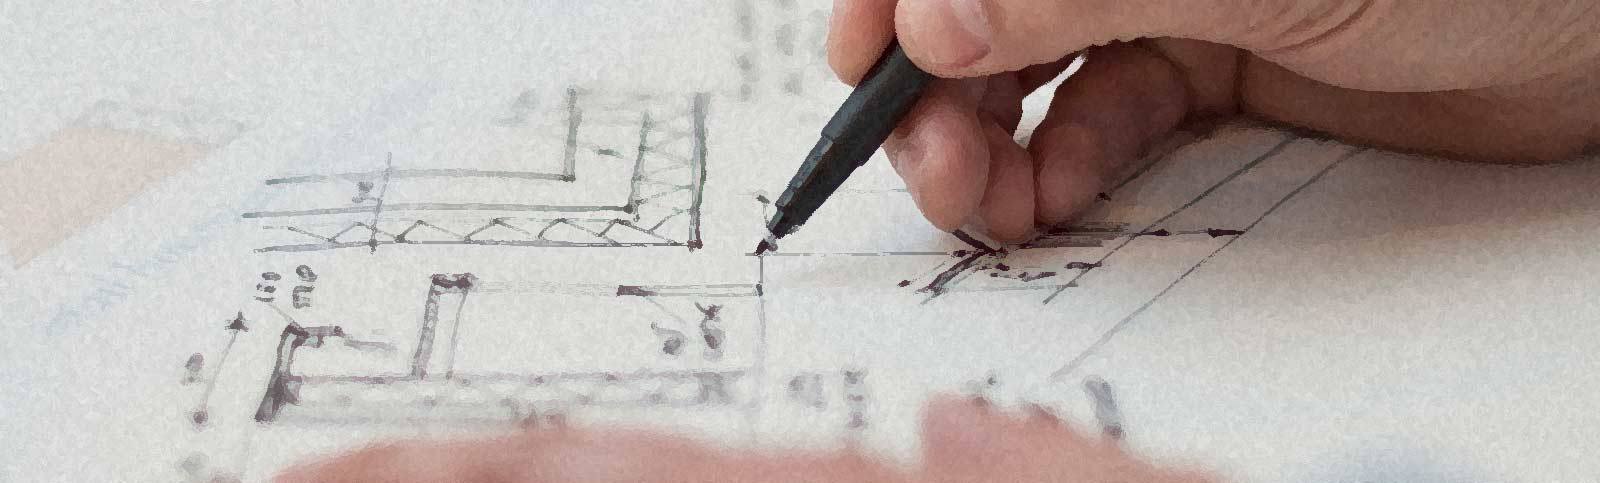 Reasons to Choose an Architect to Design Your Home